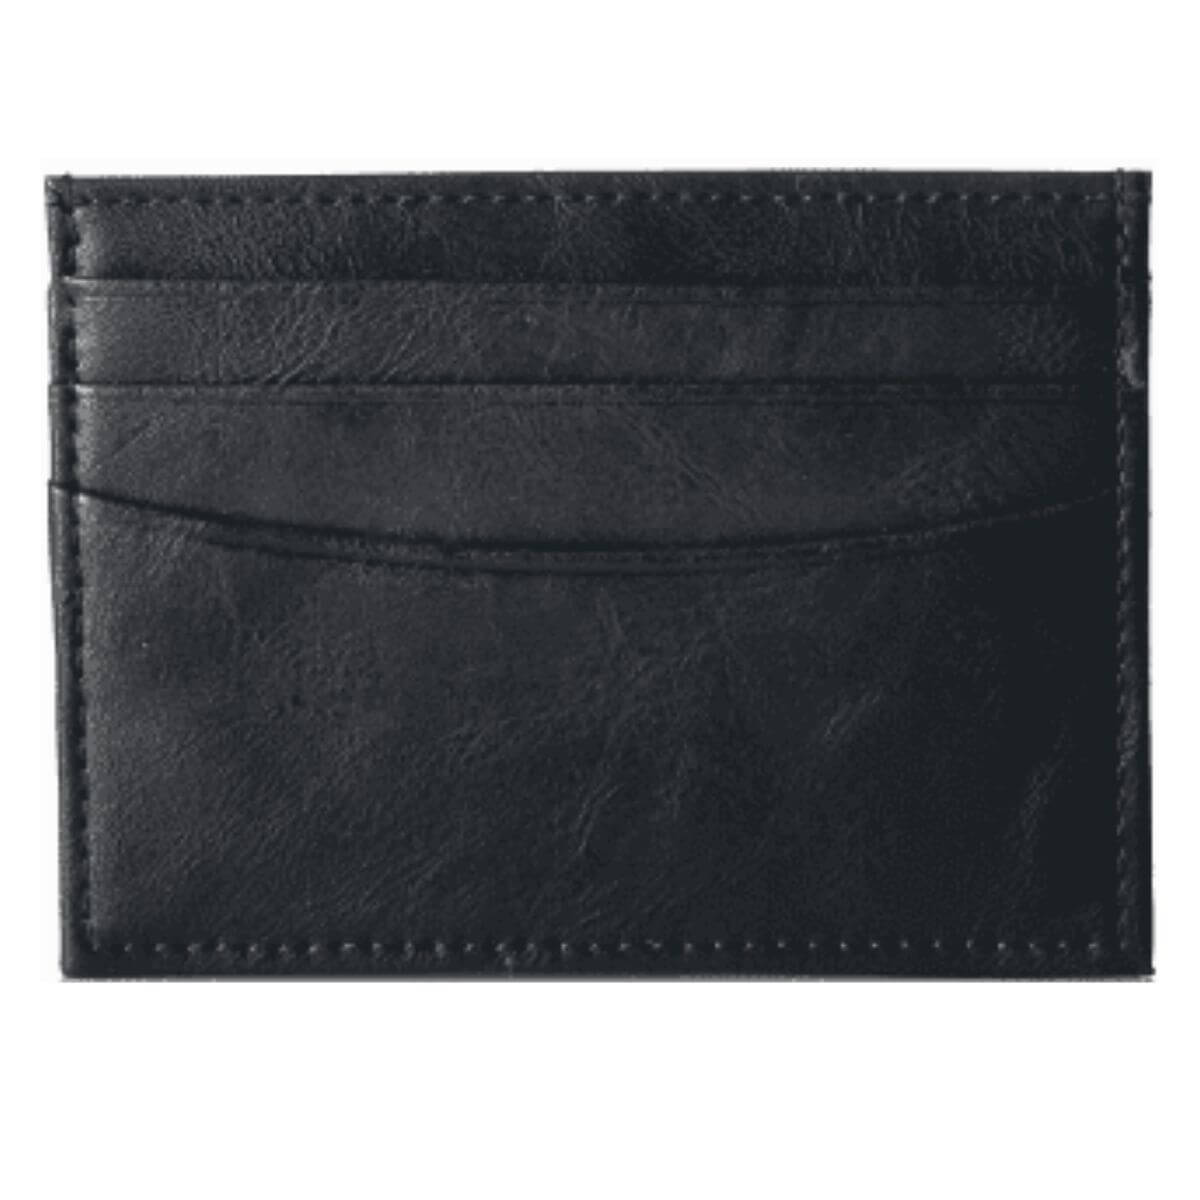 Black leather cardholder wallet by Amazon Essentials.